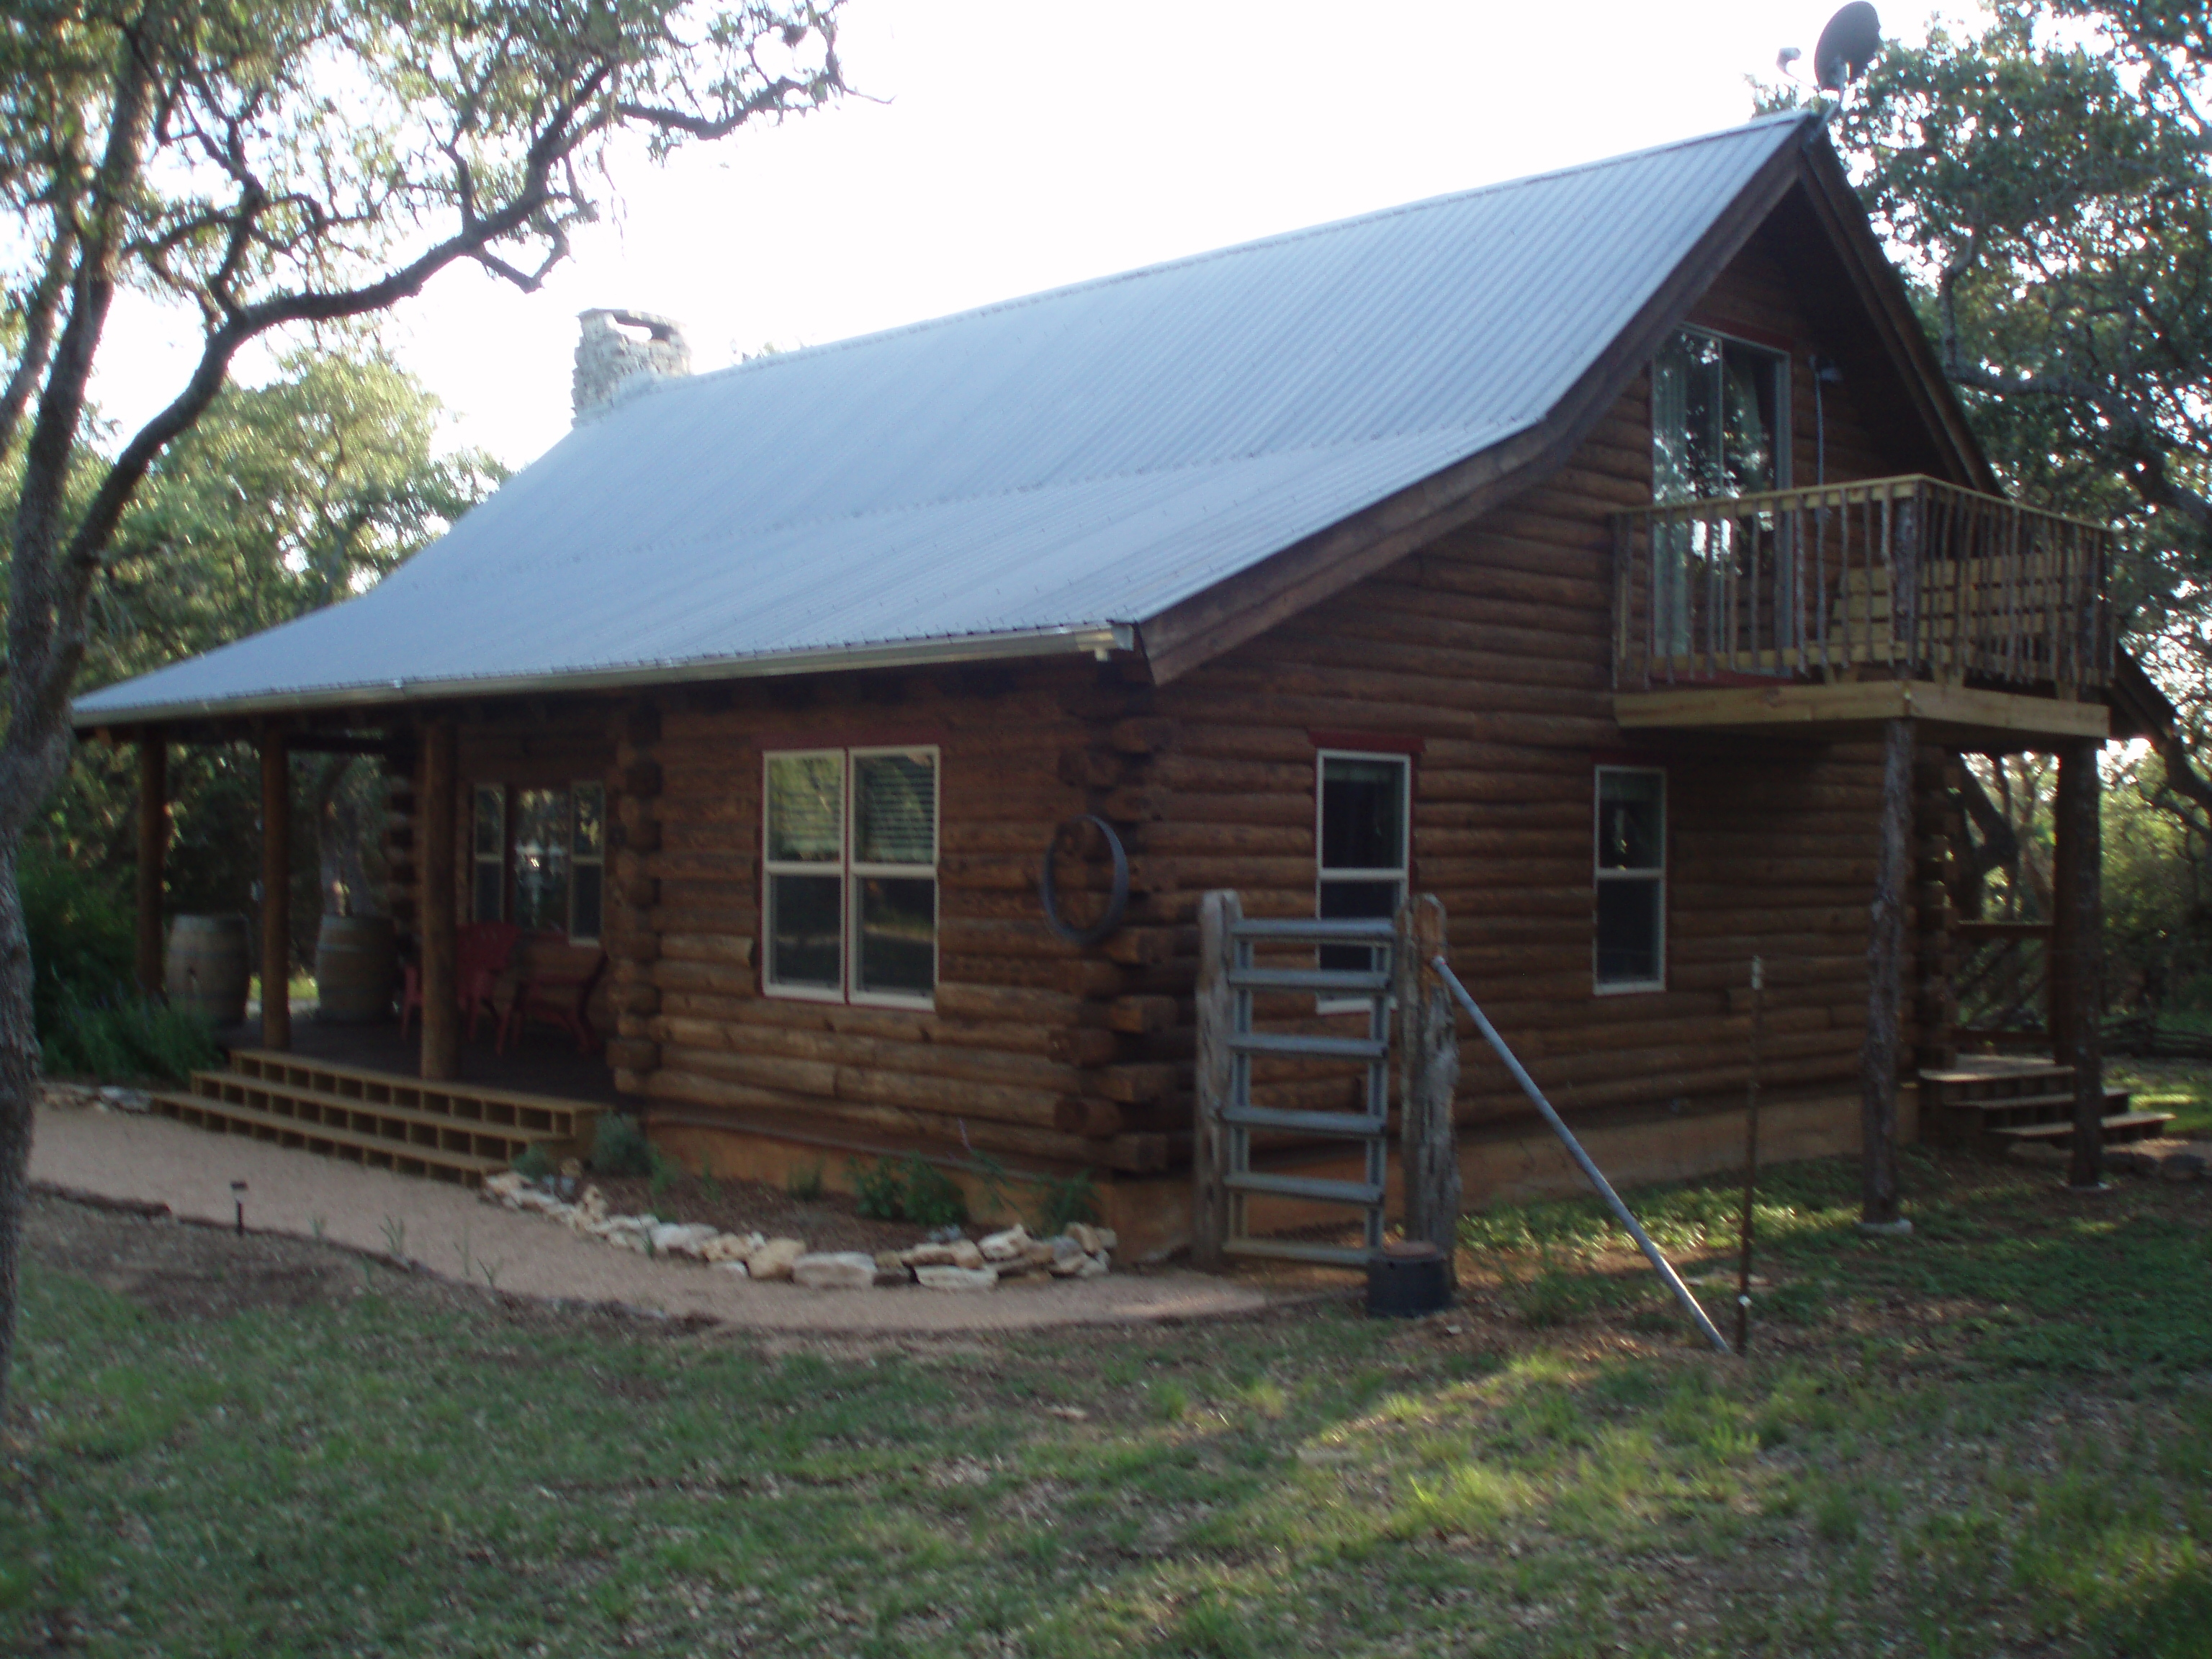 d cabins wimberley in oaks and farm equine cabin texas venue rentals vacation s vintage rooms lodging wedding